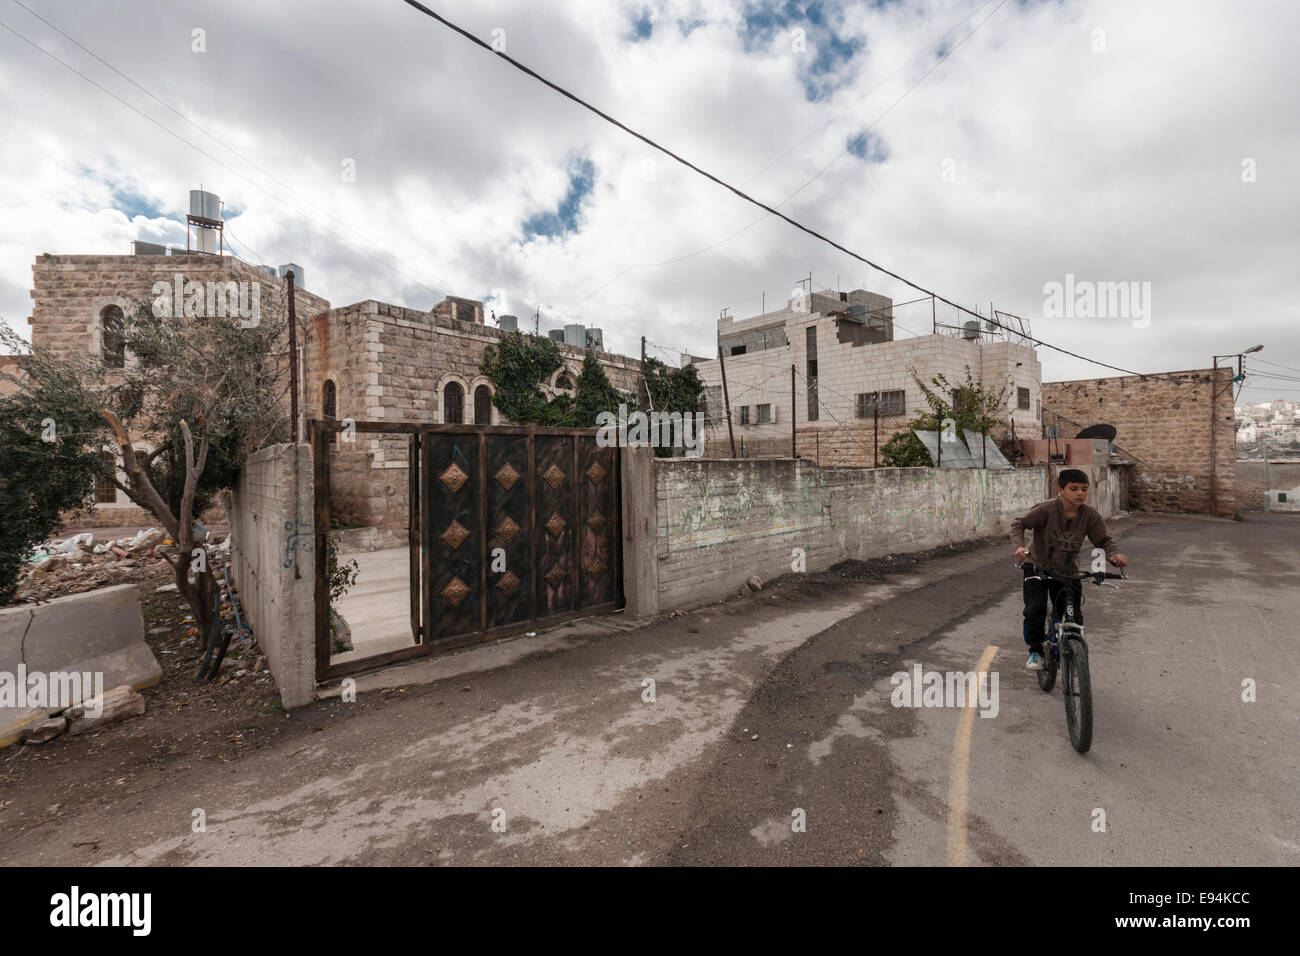 Hebron, Israel/West Bank. An Arab boy rides his bicycle in the street near stone houses. - Stock Image